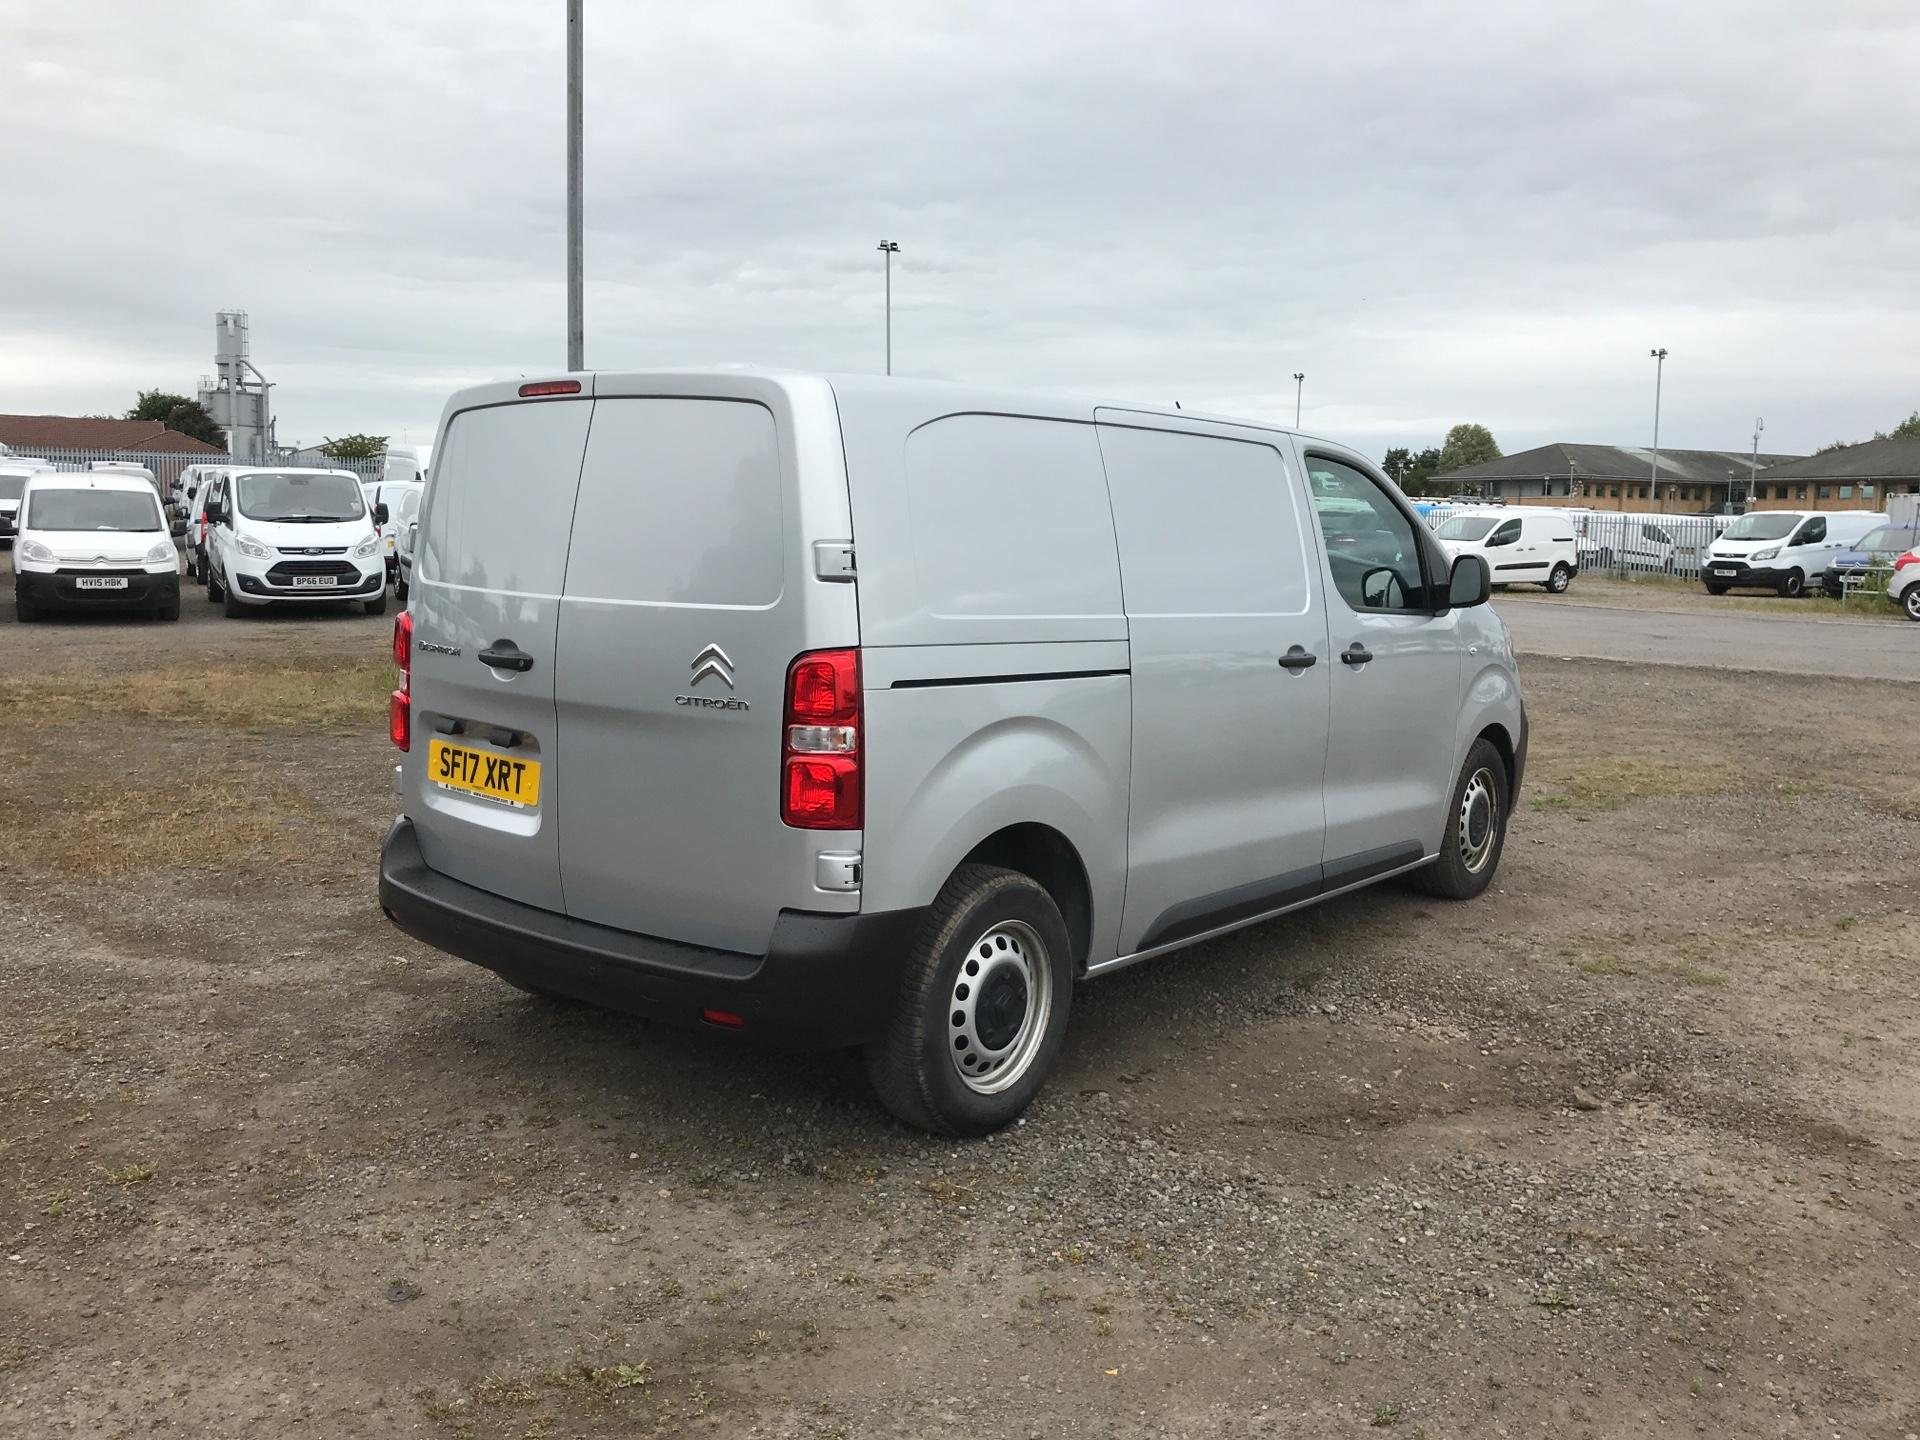 2017 Citroen Dispatch 1400 2.0 BLUE HDI ENTERPRISE 120 VAN (SF17XRT) Image 3